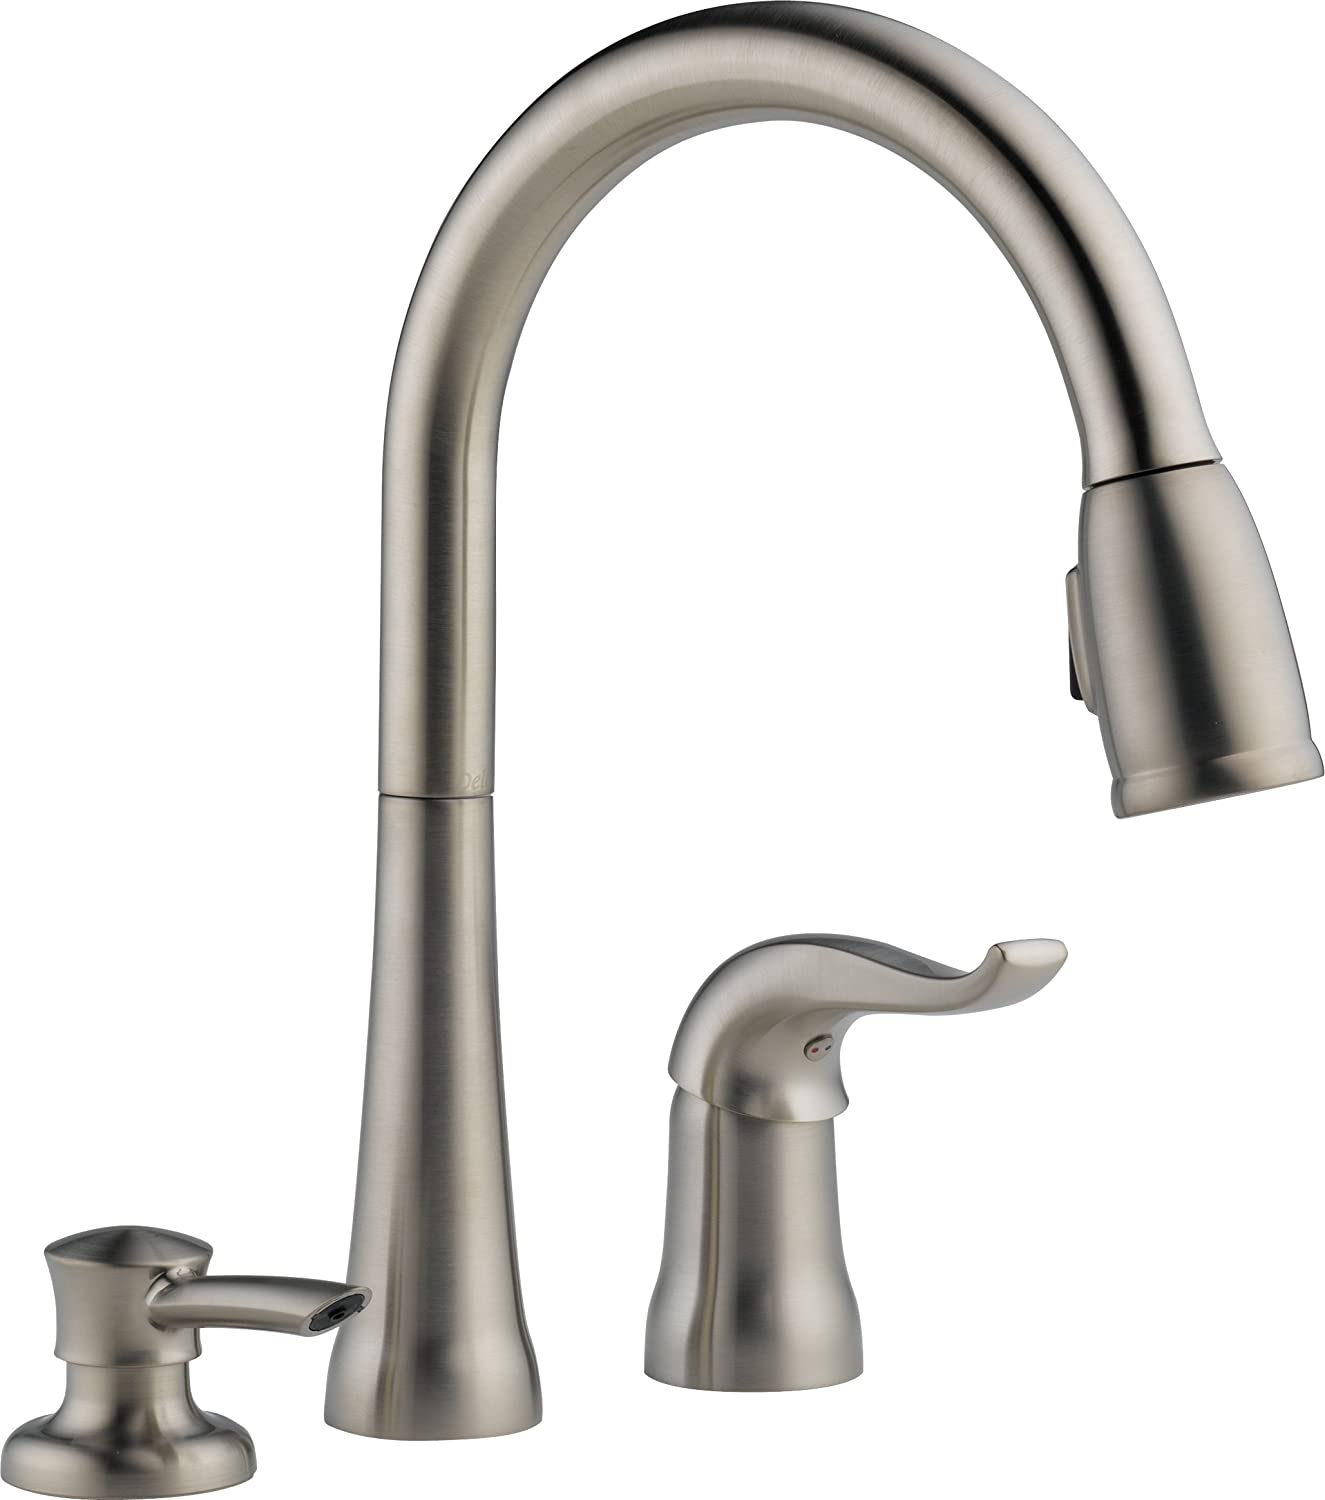 Delta 16970 best pull down kitchen faucet